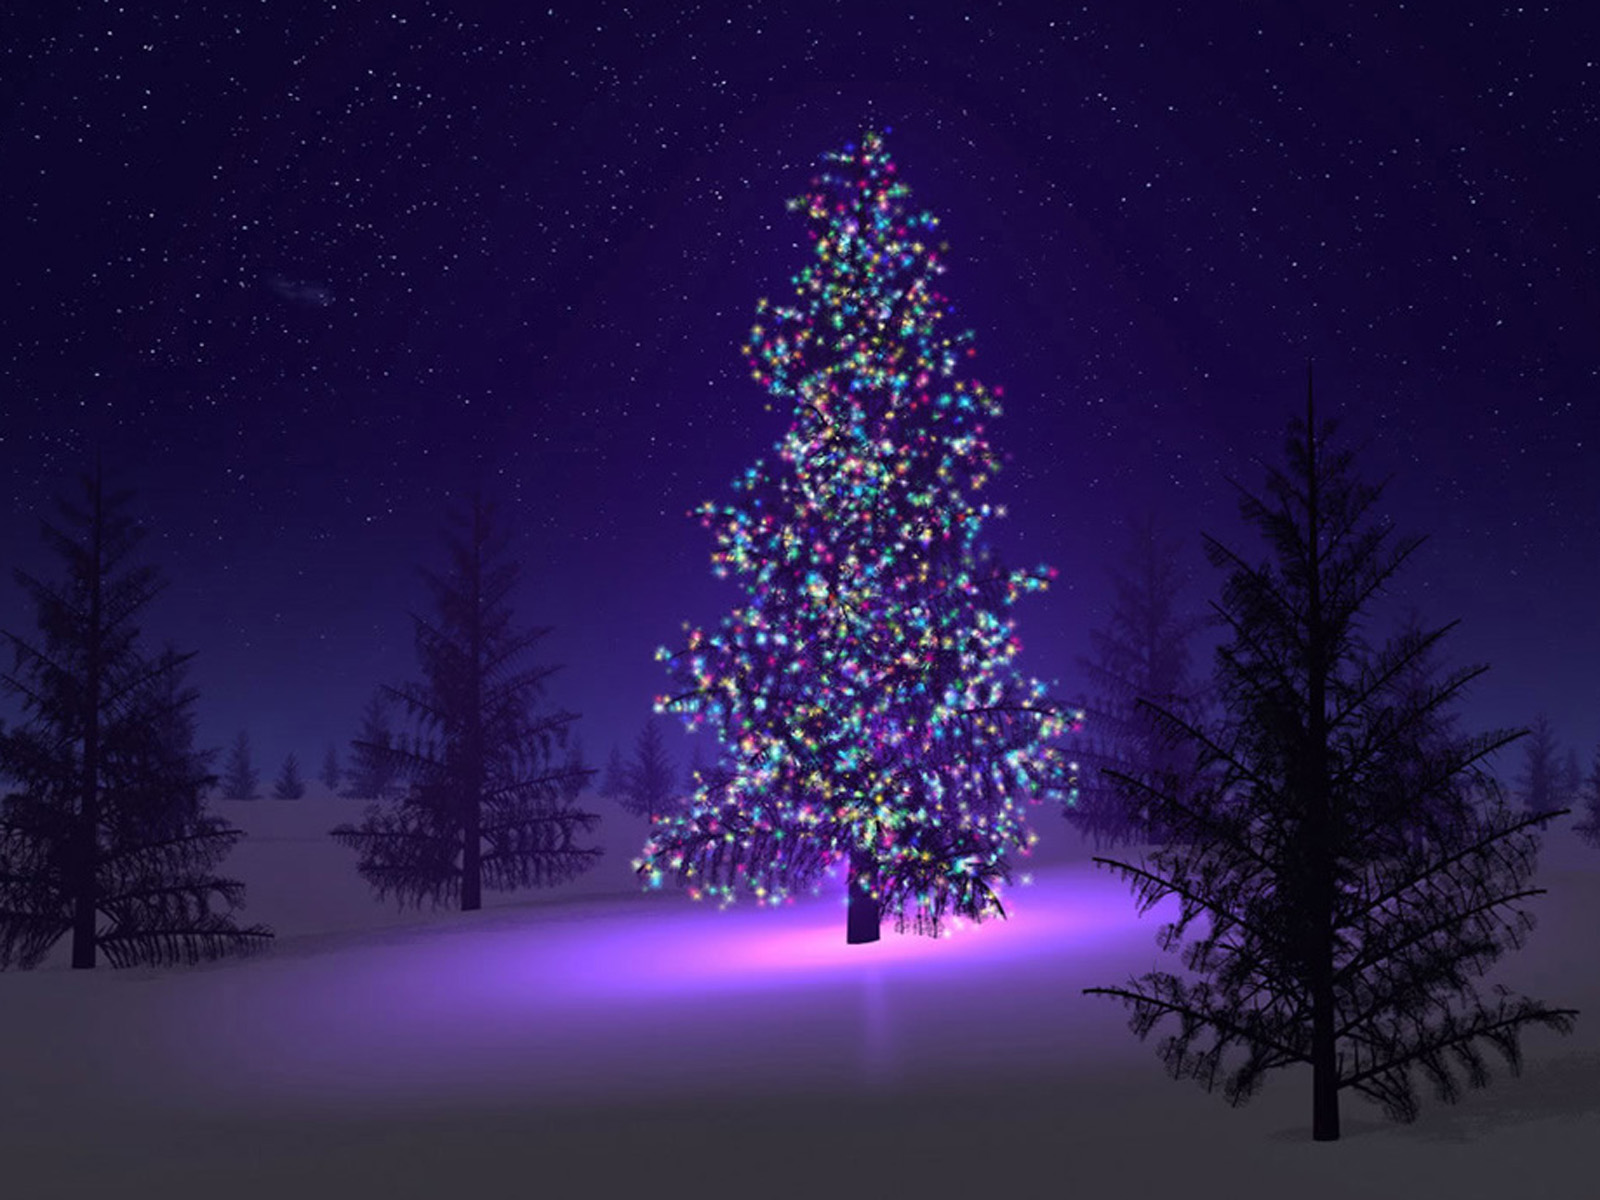 wallpapers Christmas Trees Wallpapers 1600x1200